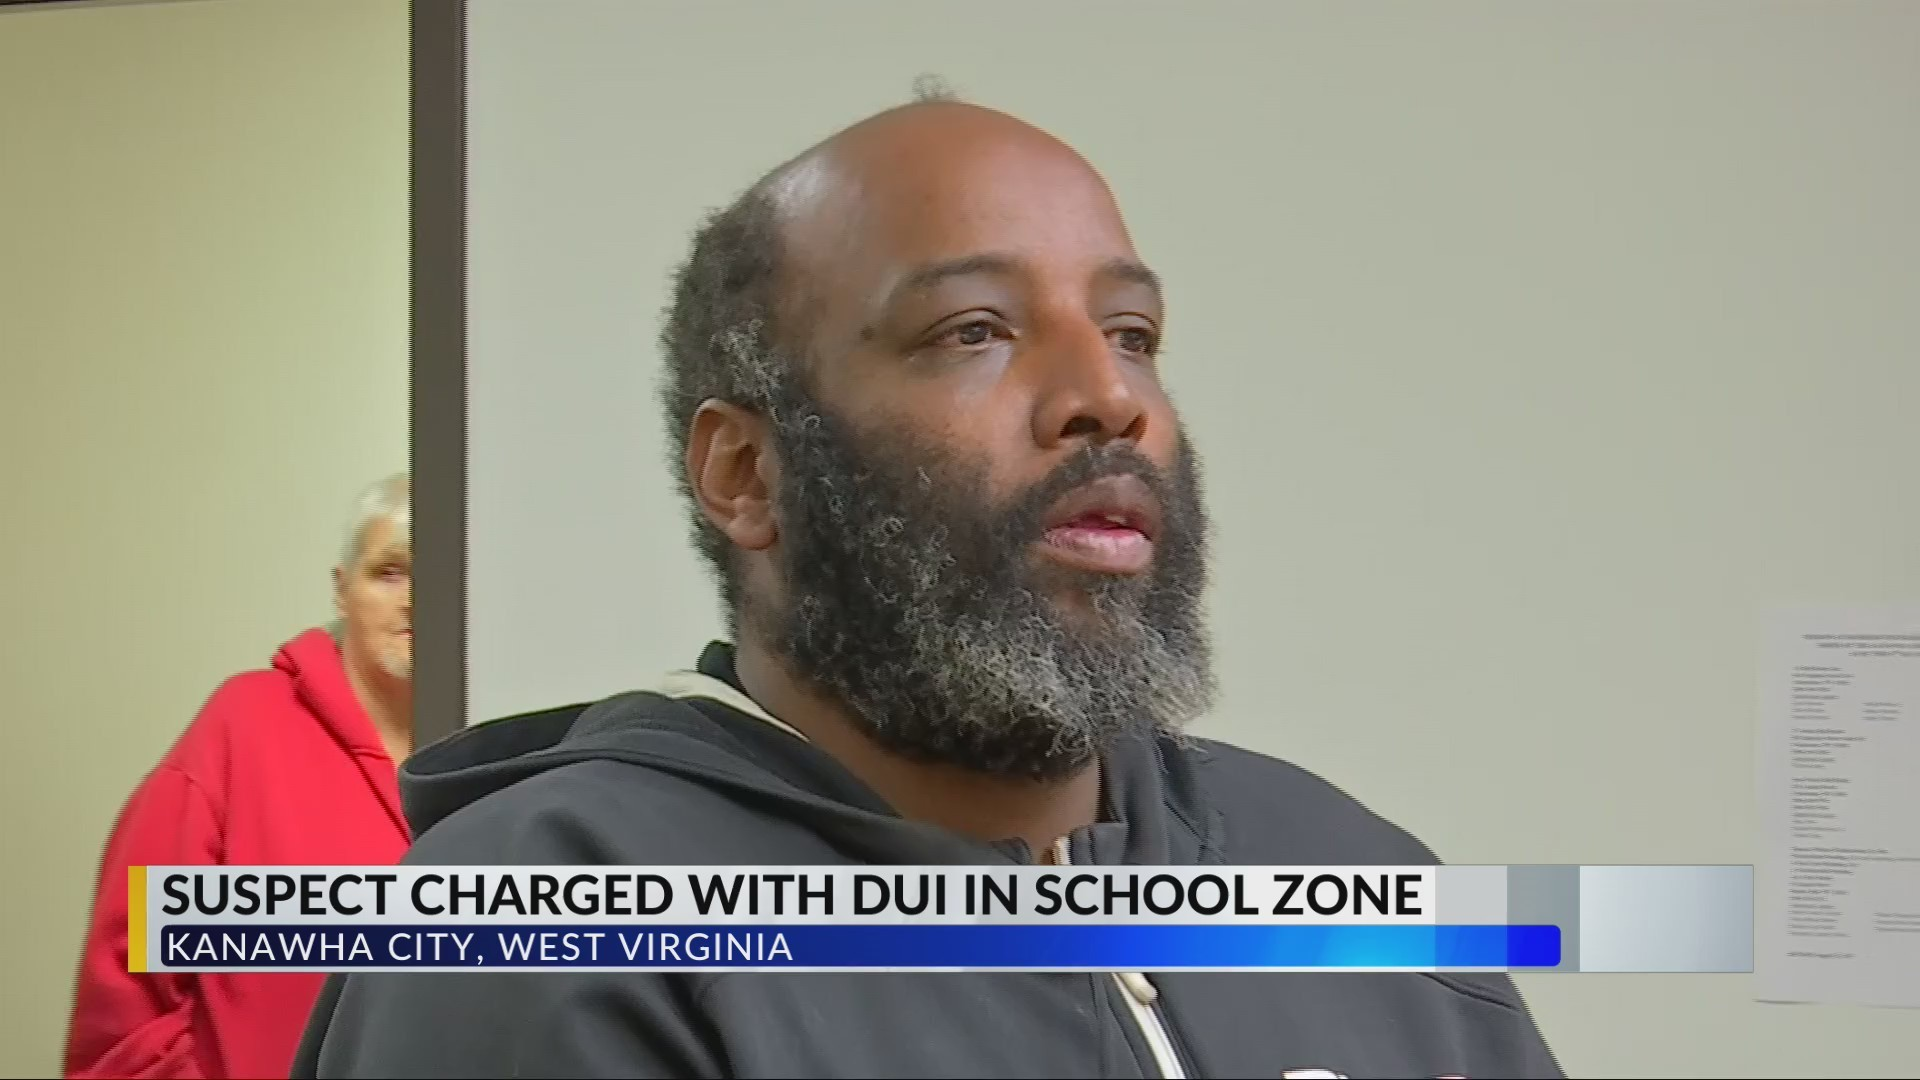 Charleston Police Arrest Man for DUI in School Zone